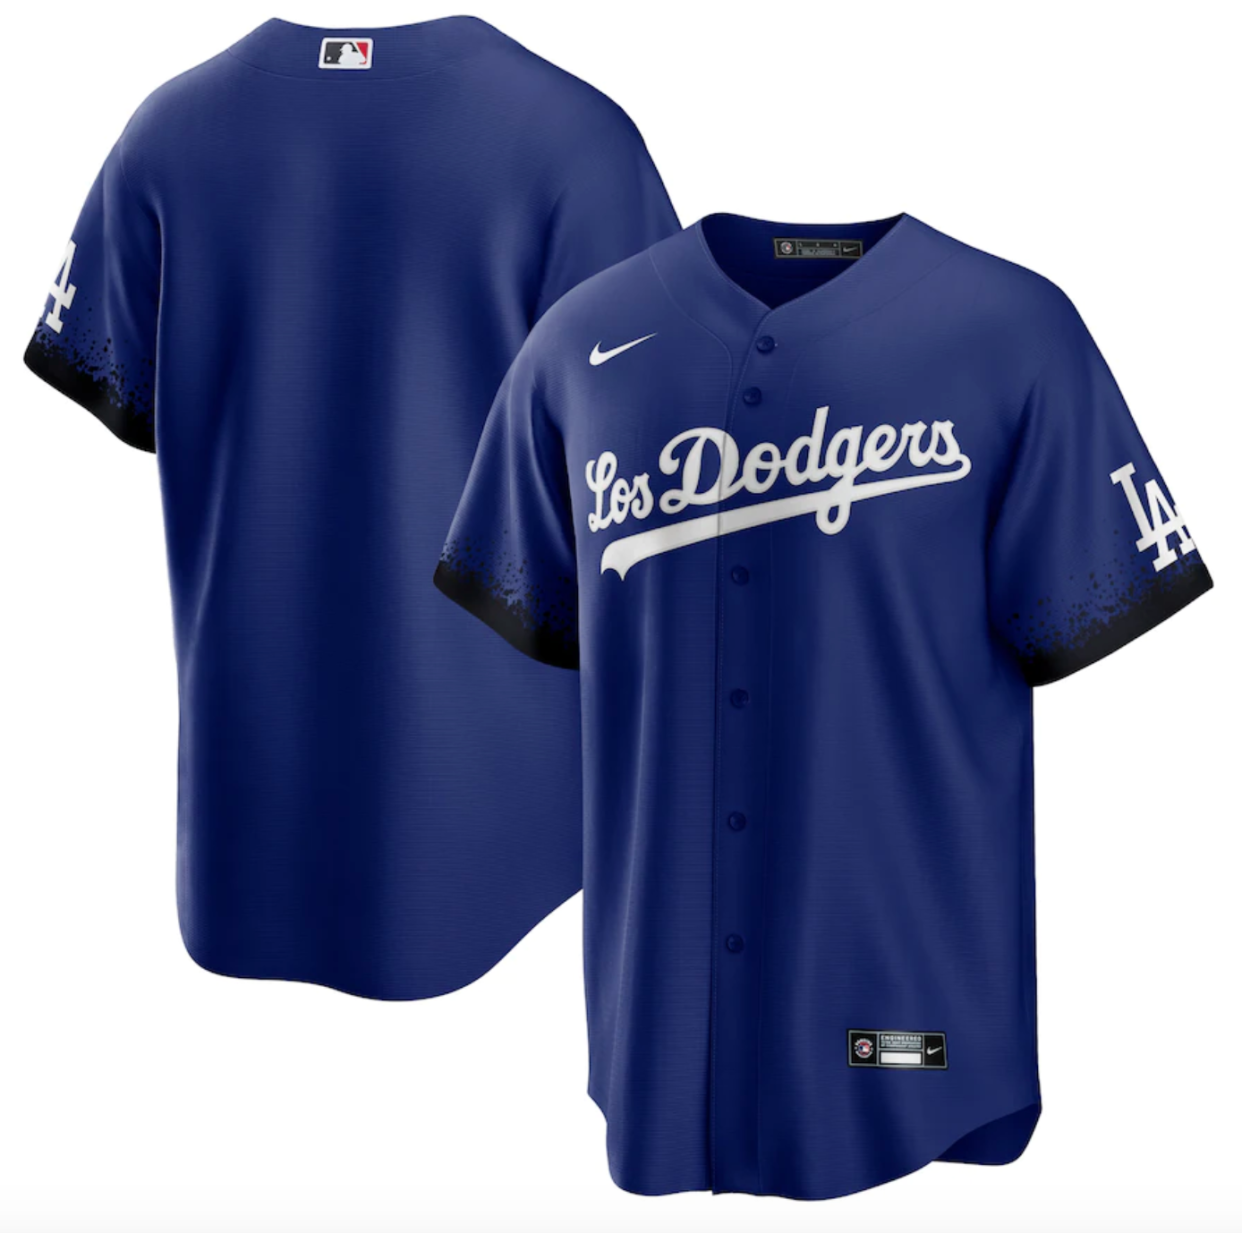 Dodgers Nike Royal 2021 City Connect Replica Jersey